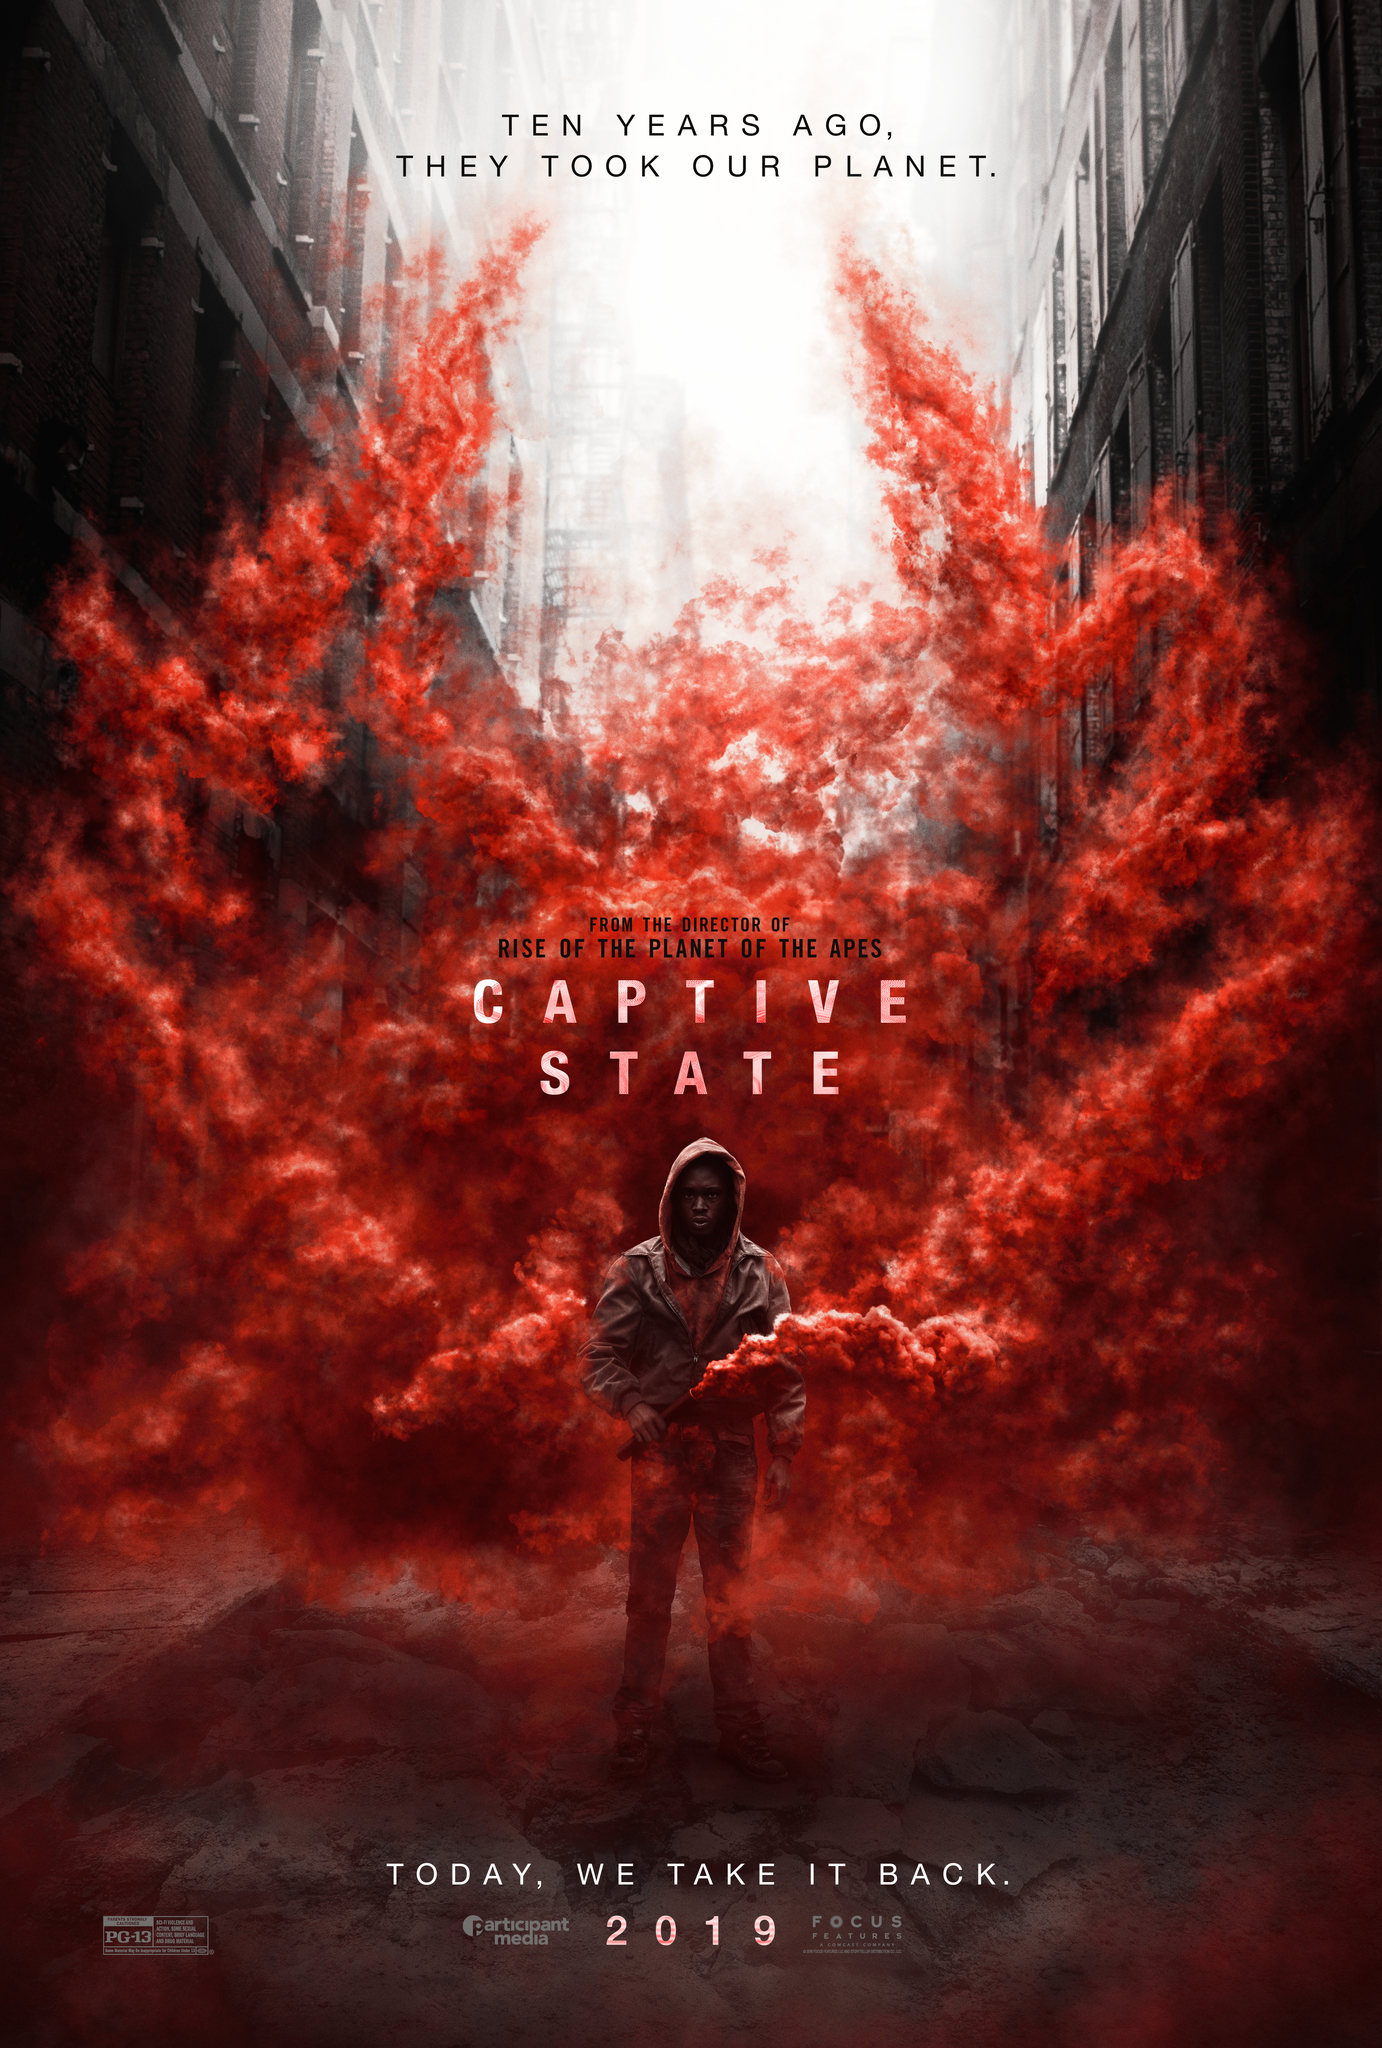 Captive State Poster1.jpg